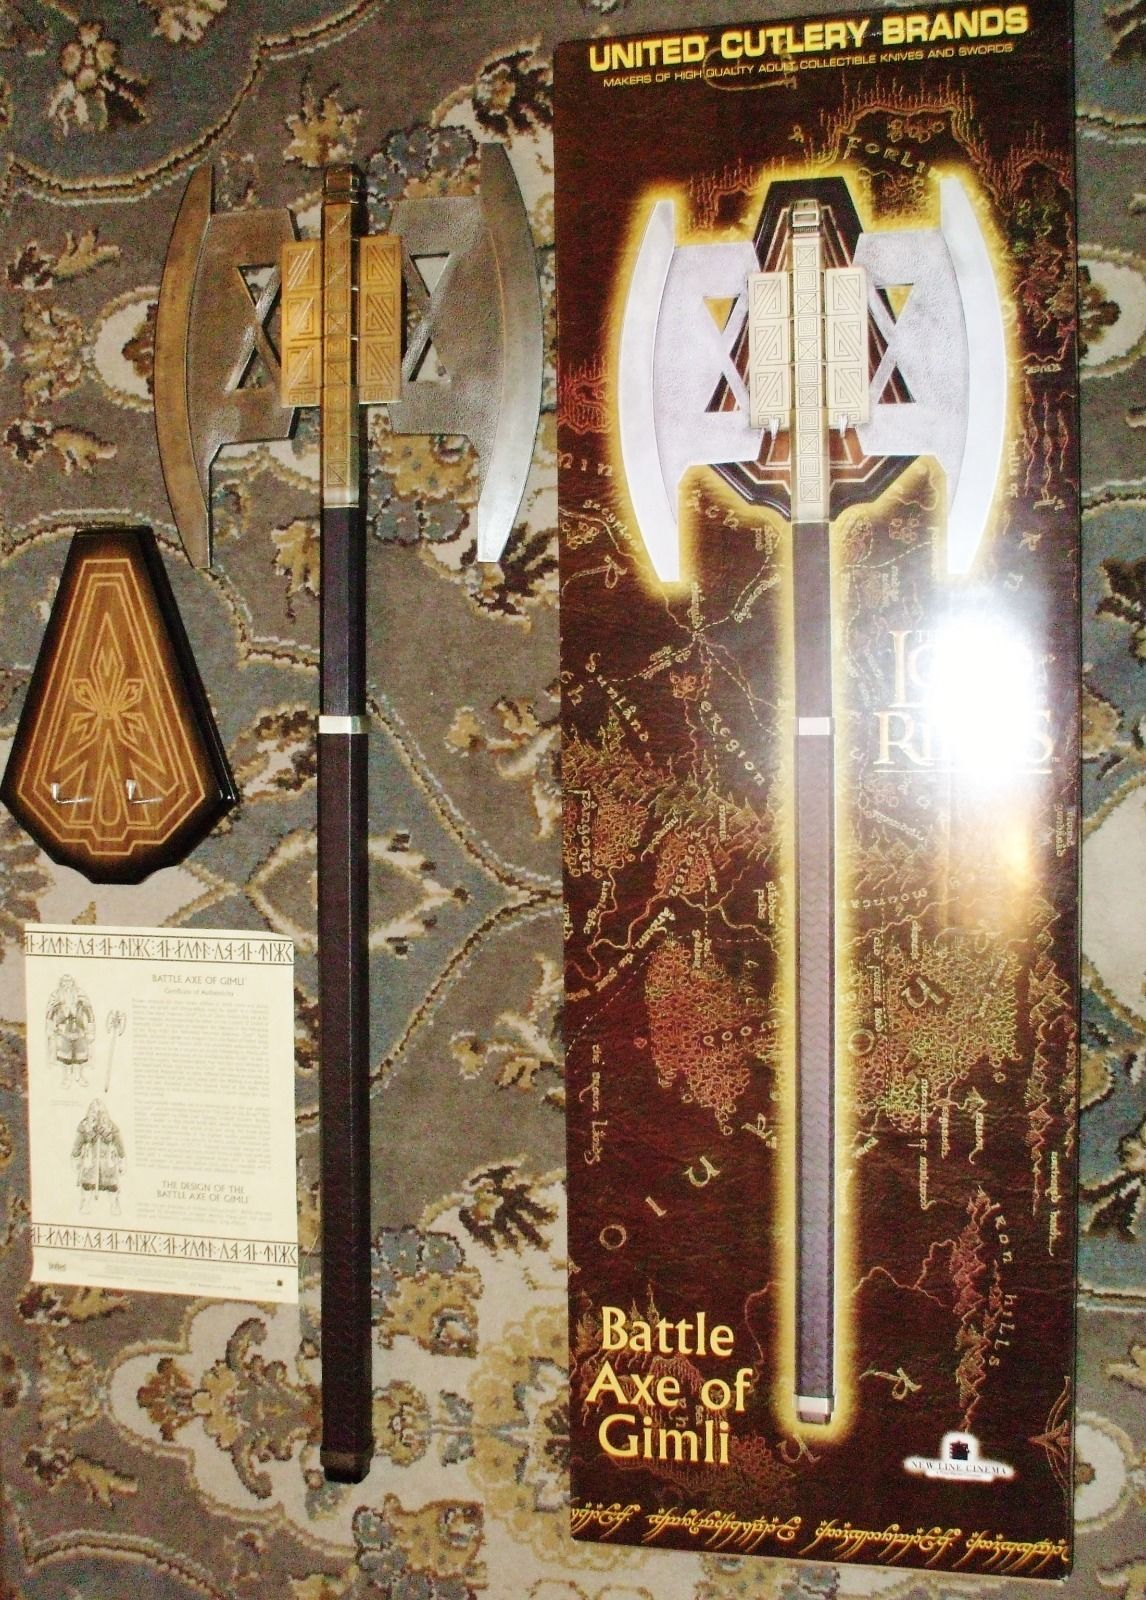 United lotr images uc1380aslb anduril jpg - United Cutlery Battle Axe Of Gimli Uc1397abnb